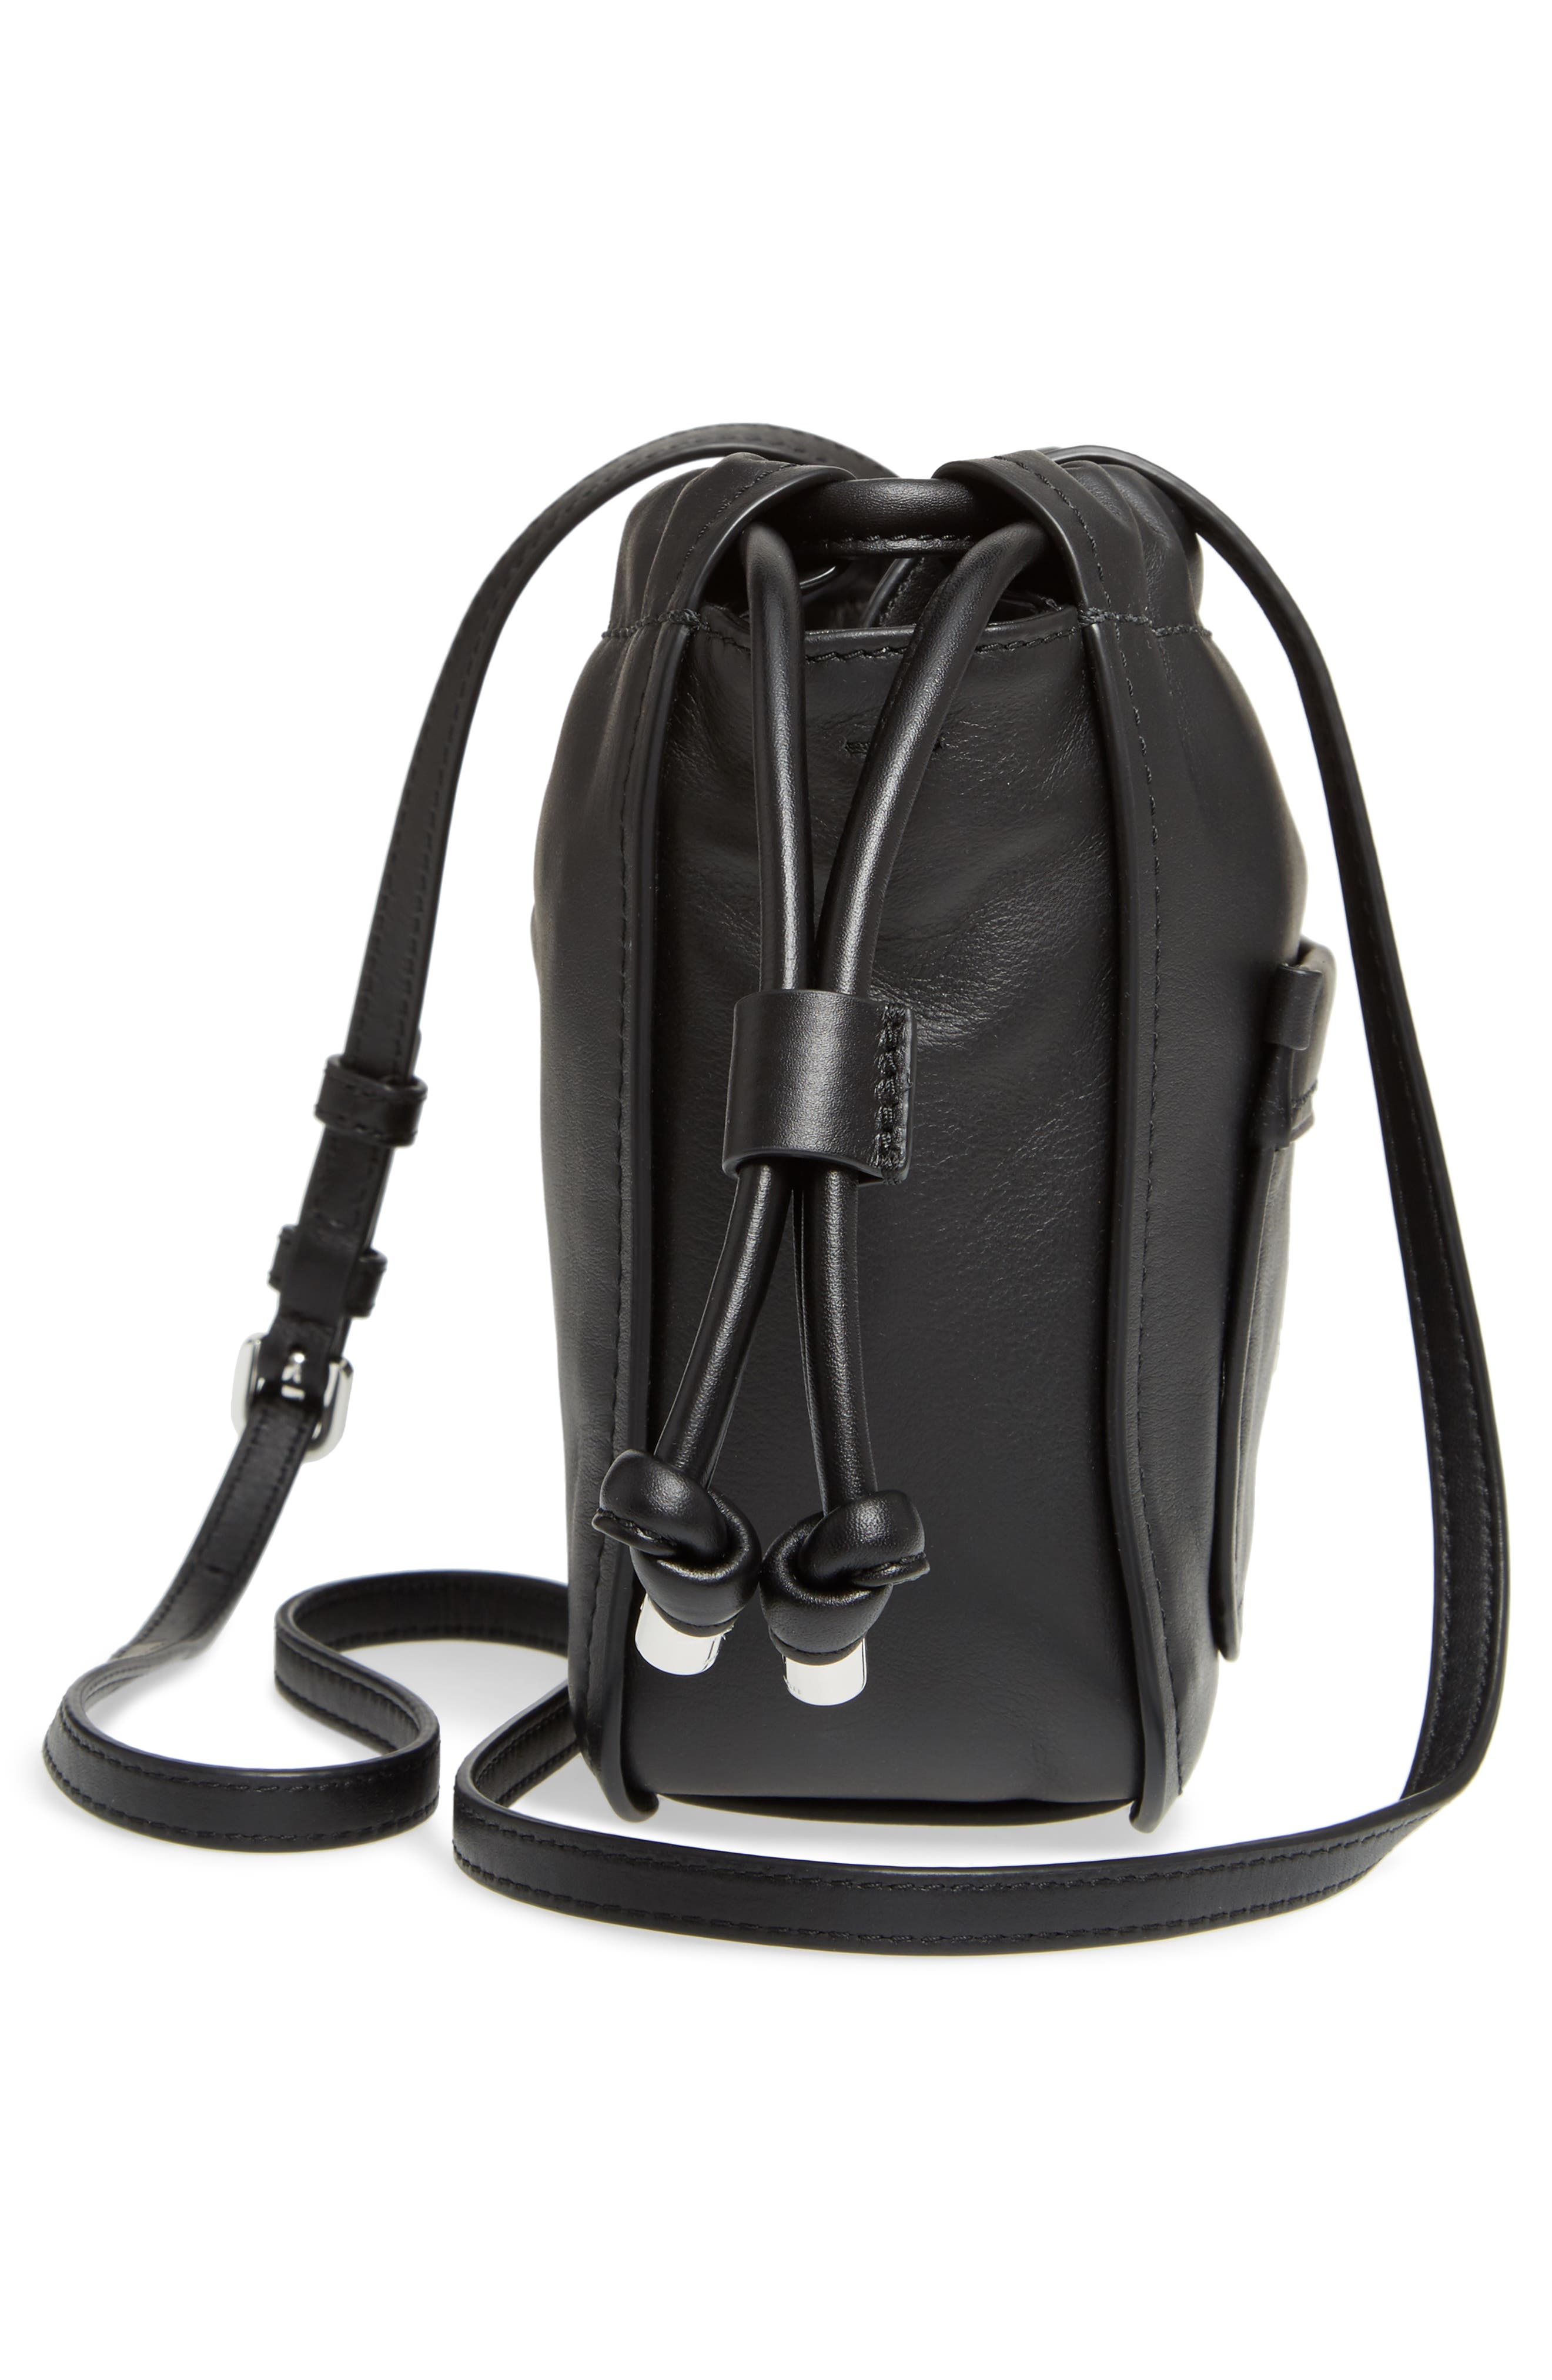 Tied Up Leather Crossbody Bag,                             Alternate thumbnail 5, color,                             001